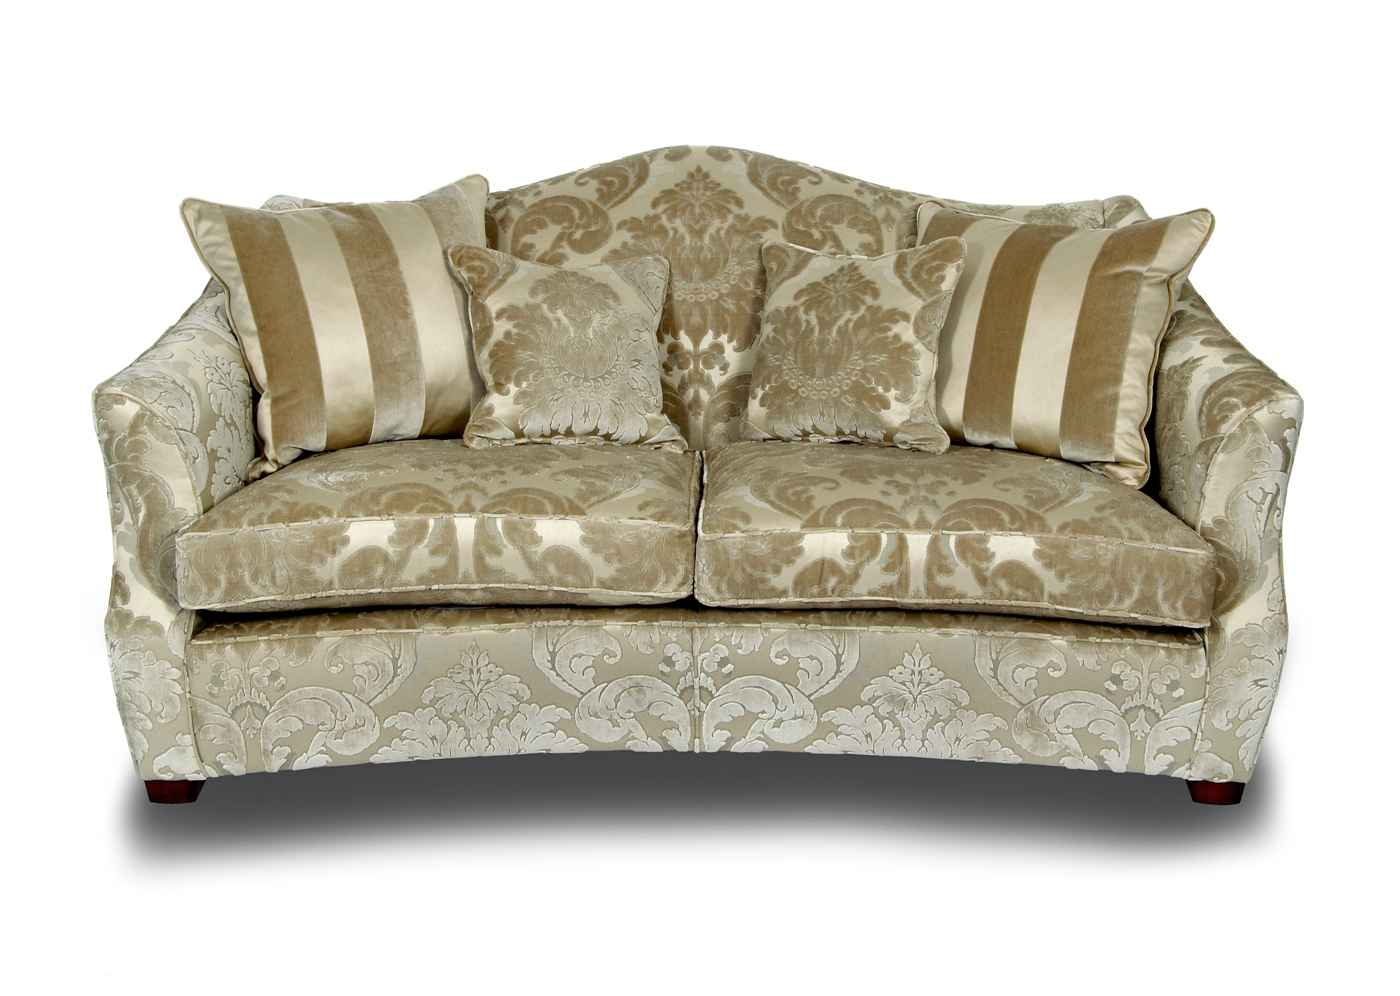 Manolo Gold Flock Fabric Sofas